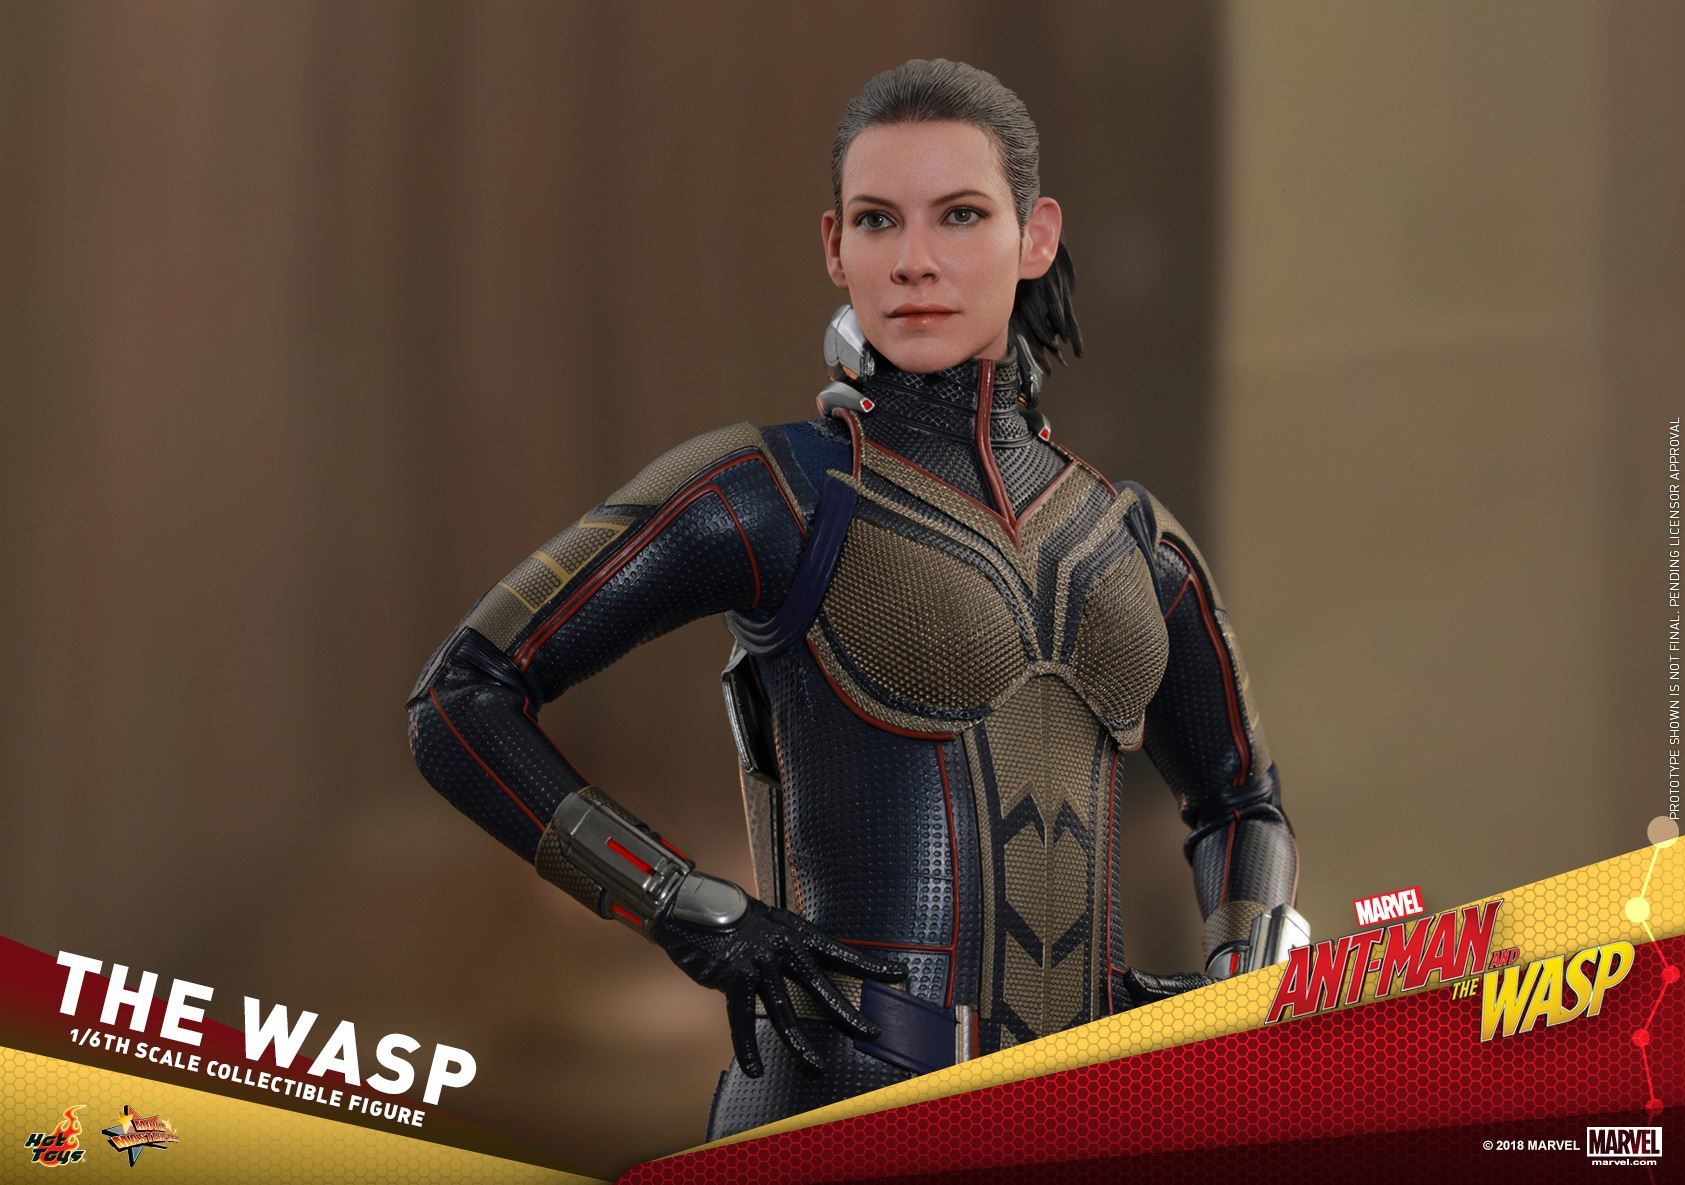 Hot-Toys-Ant-Man-and-The-Wasp-The-Wasp-Collectible-Figure_PR2.jpg